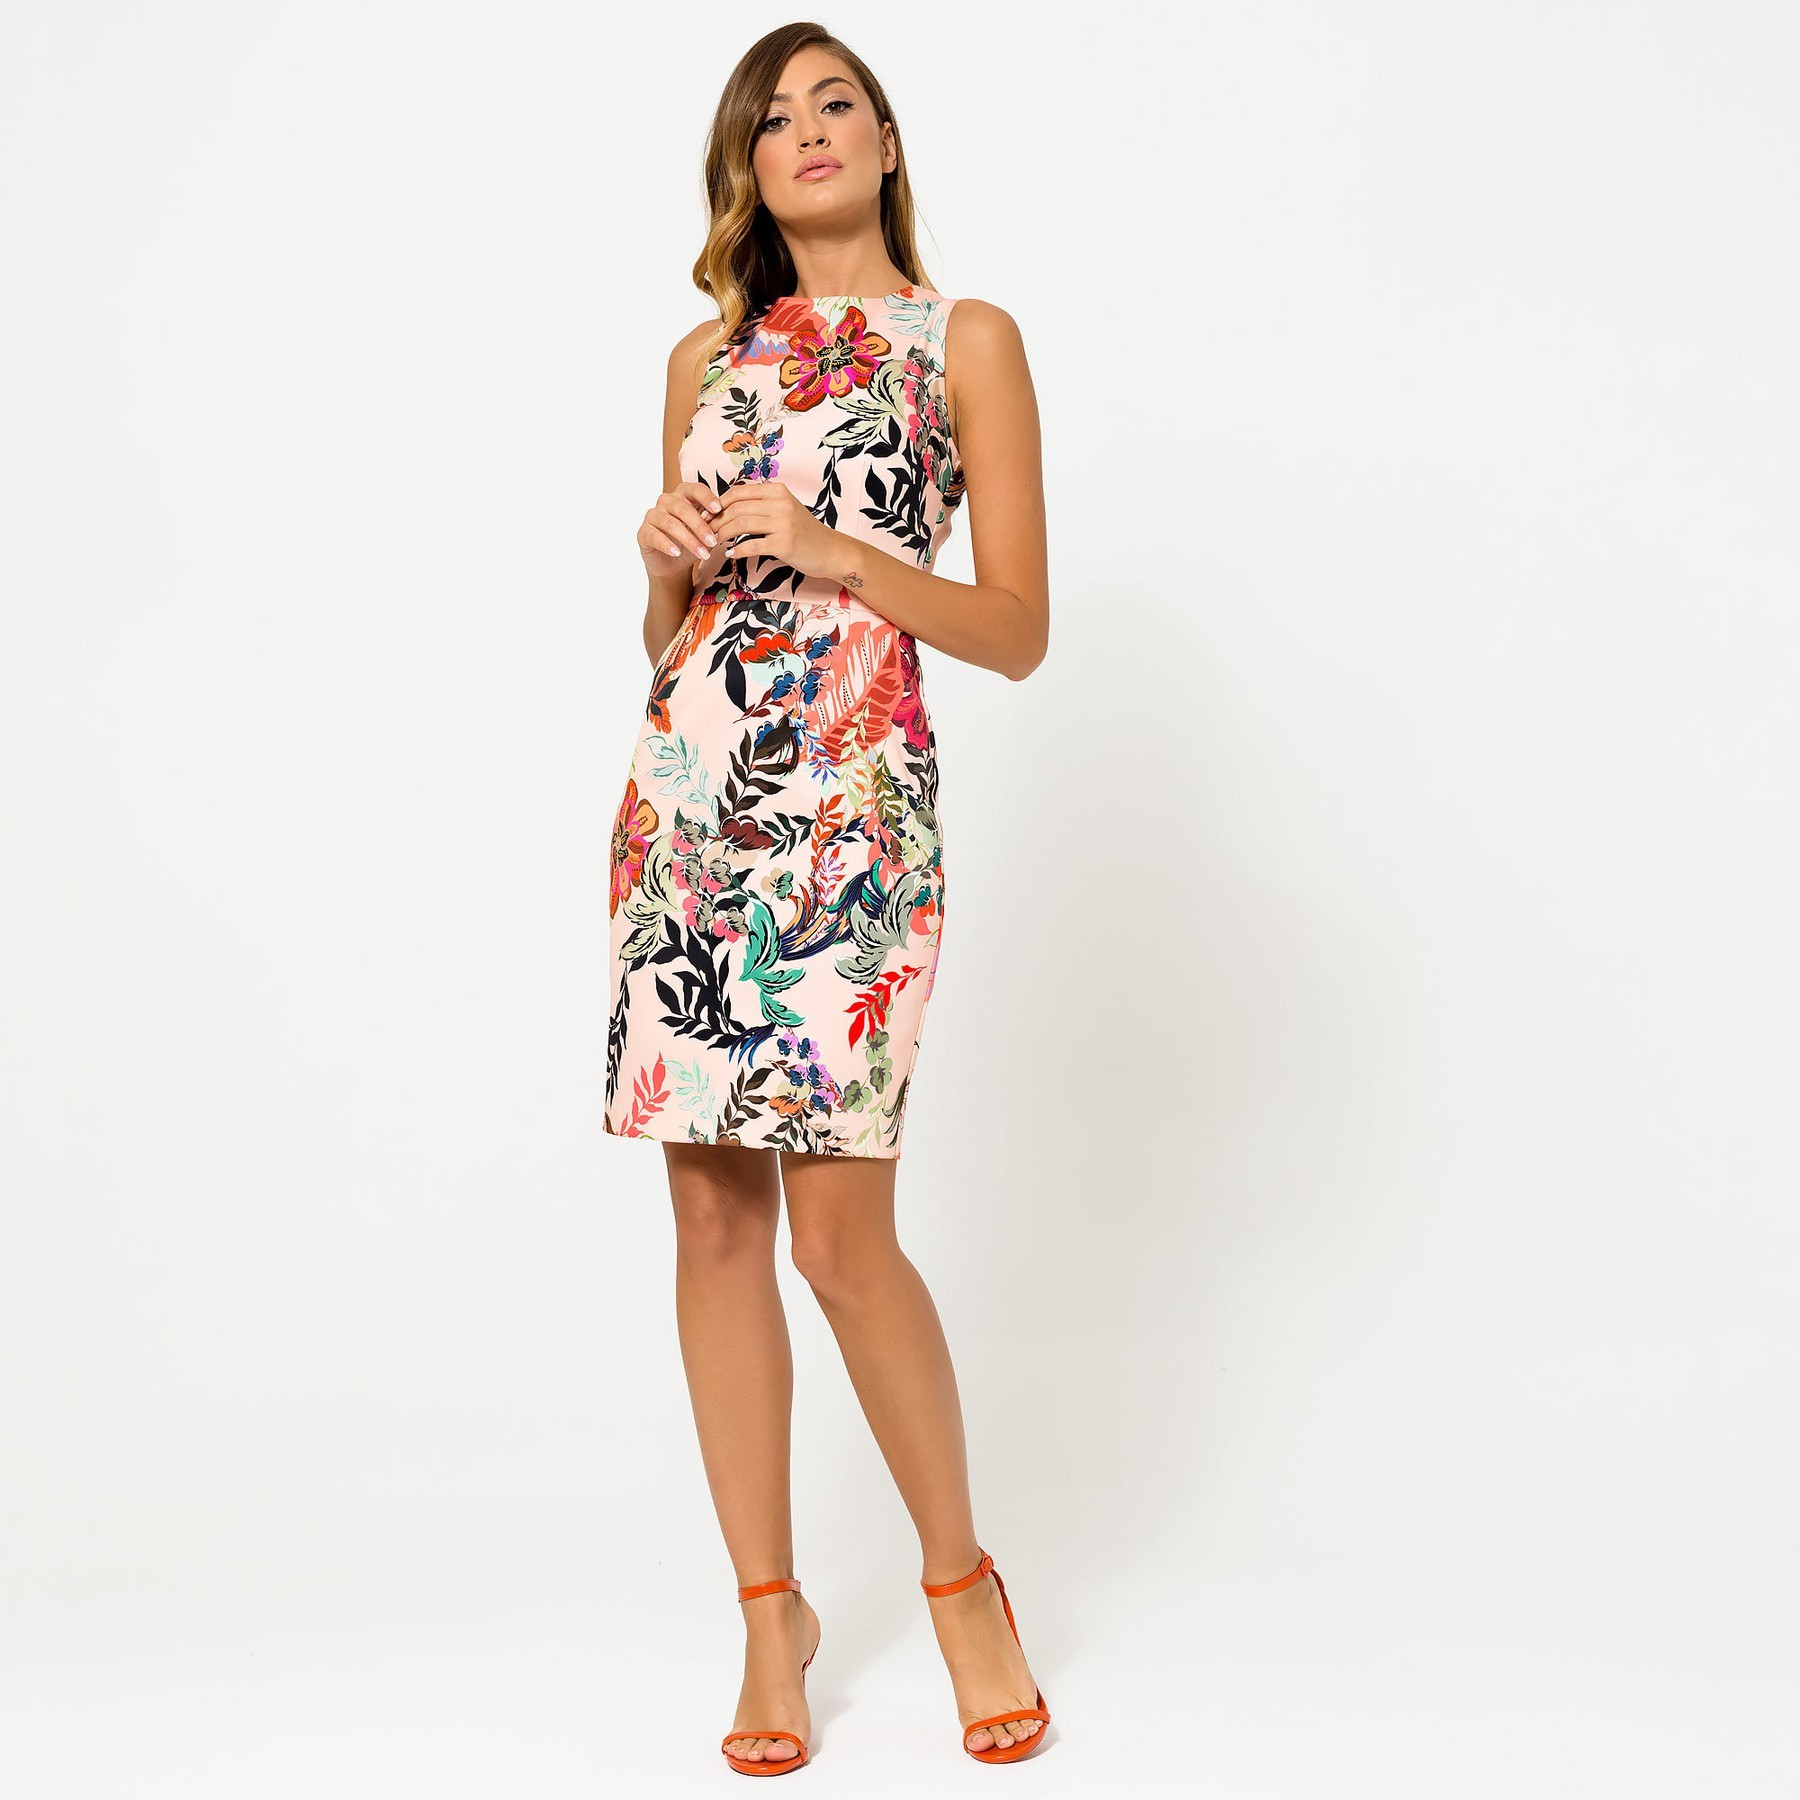 Floral Mini Dress ACCDRFLOR3003